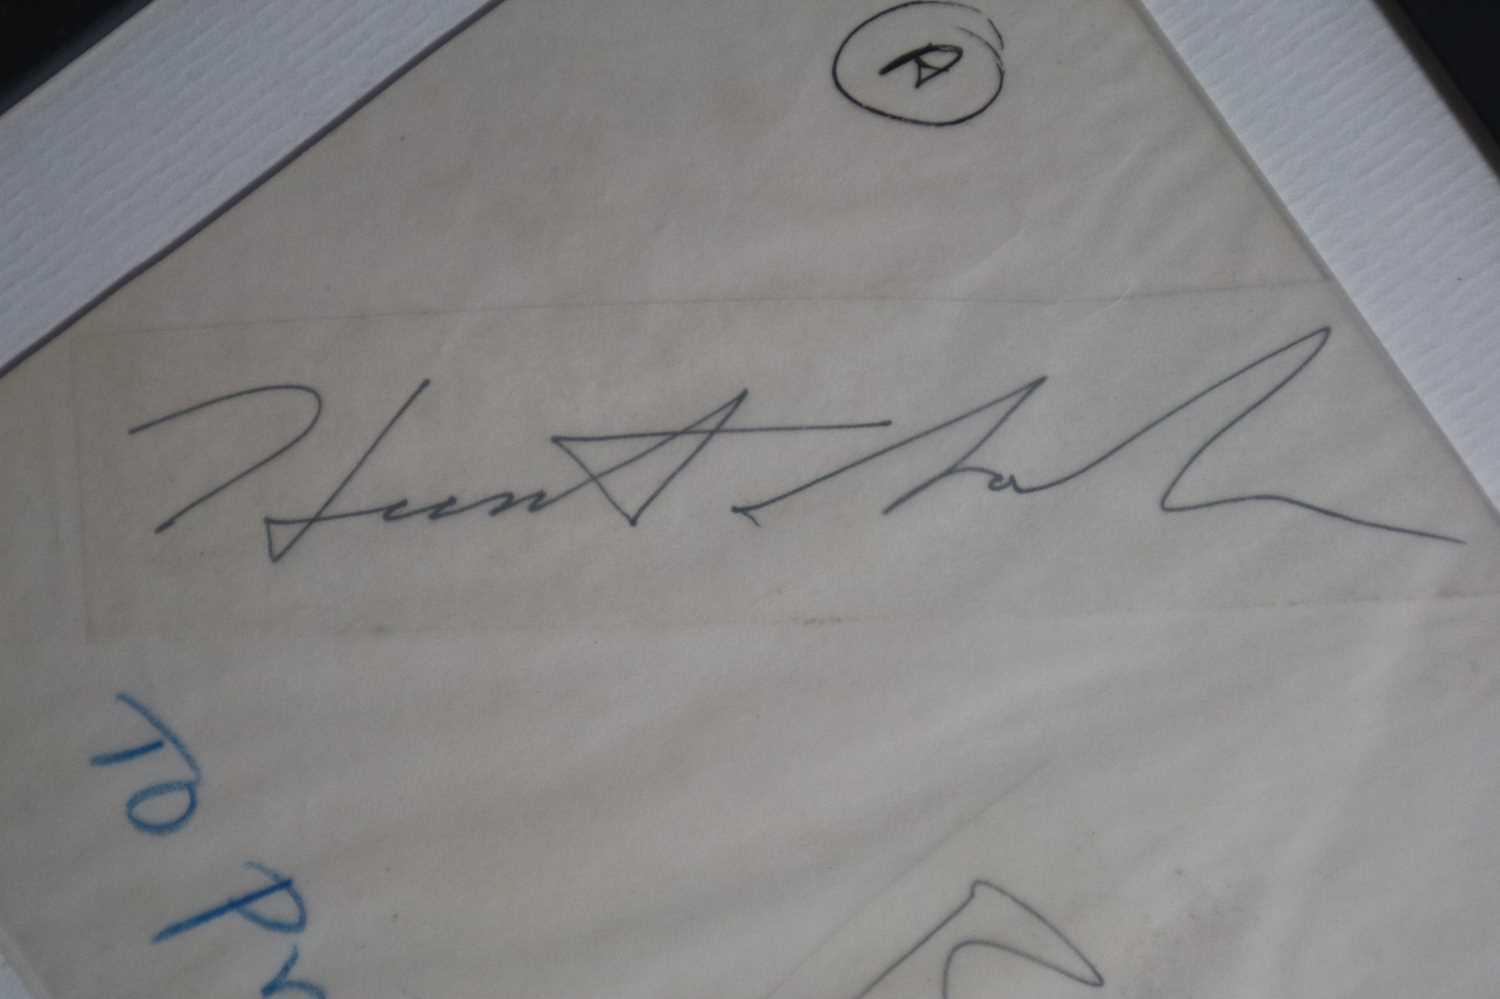 David Bowie and Tin Machine Band Signatures - Image 6 of 8